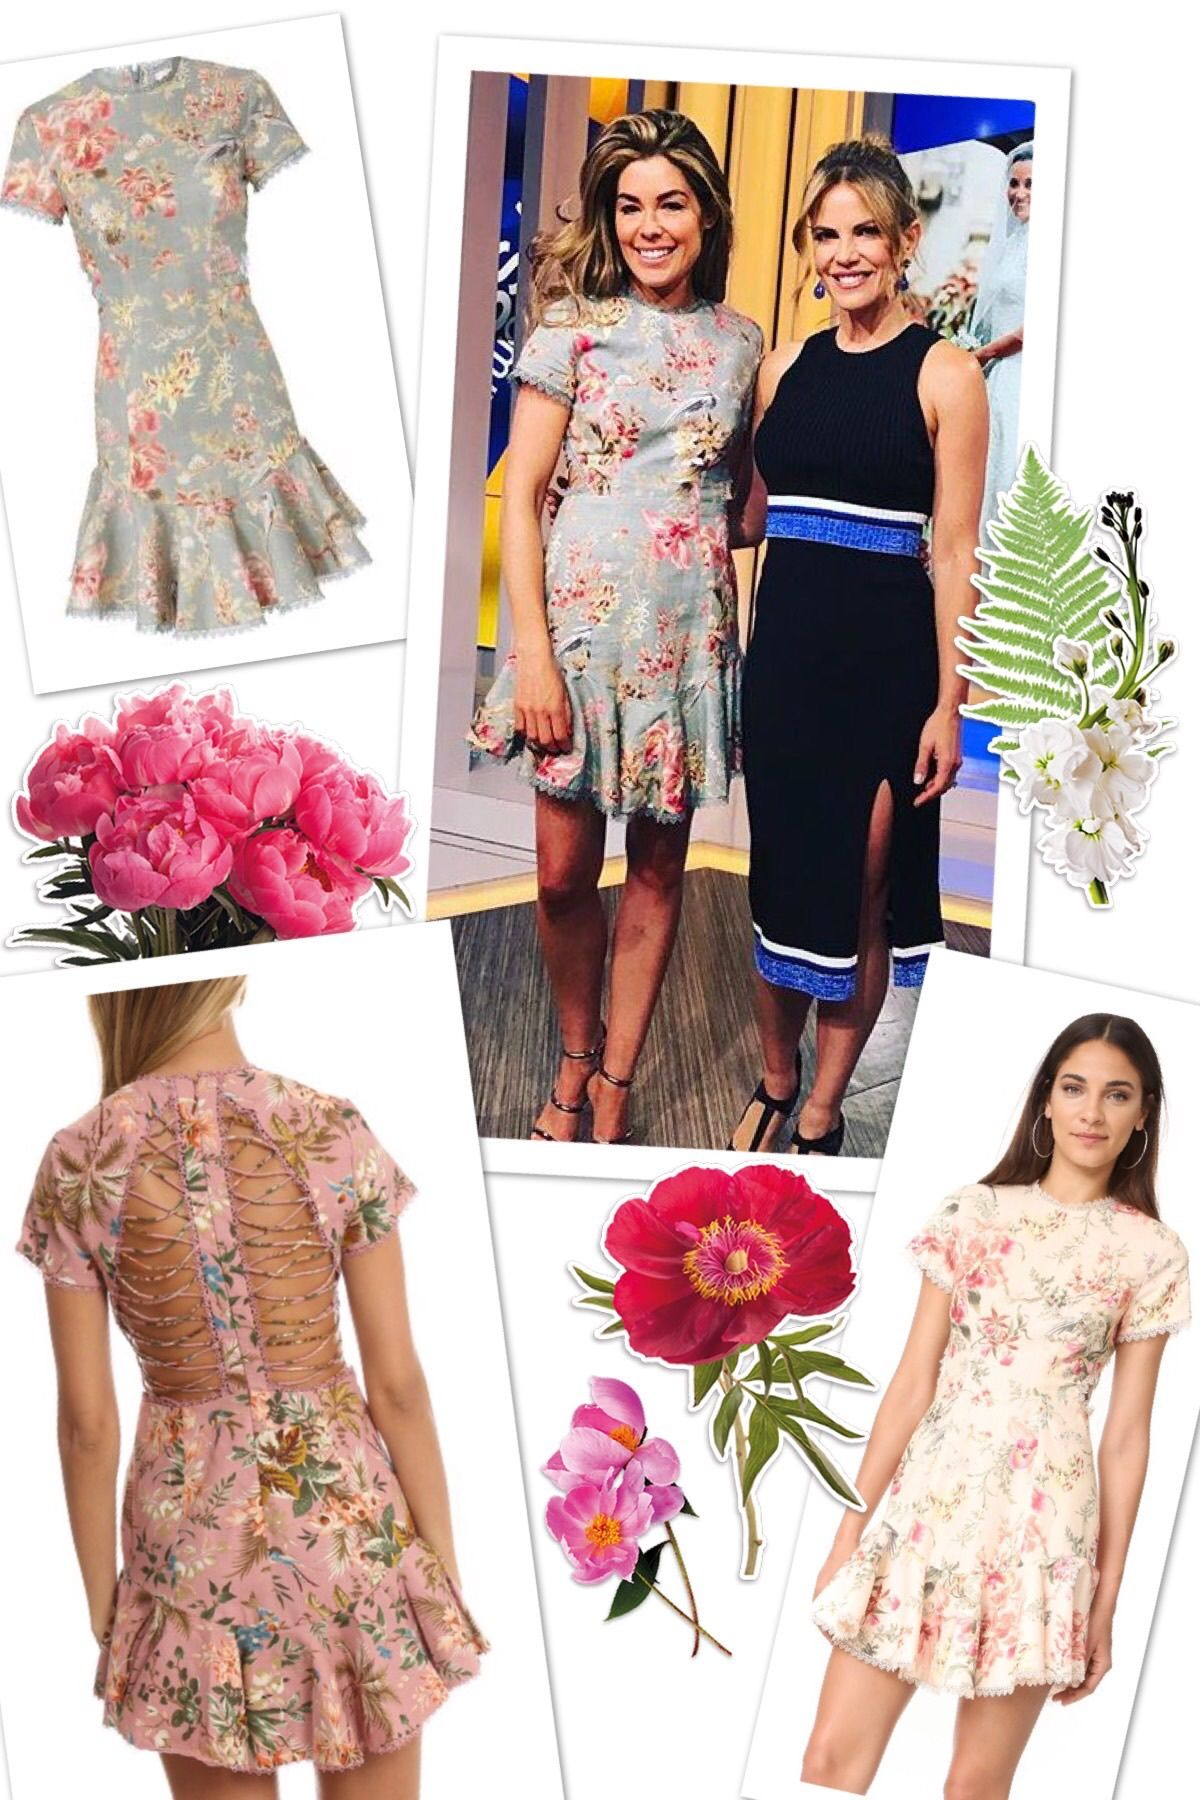 The dress access - Sophie Stanbury S Blue Floral Dress On Access Hollywood Has The Most Amazing Back Details